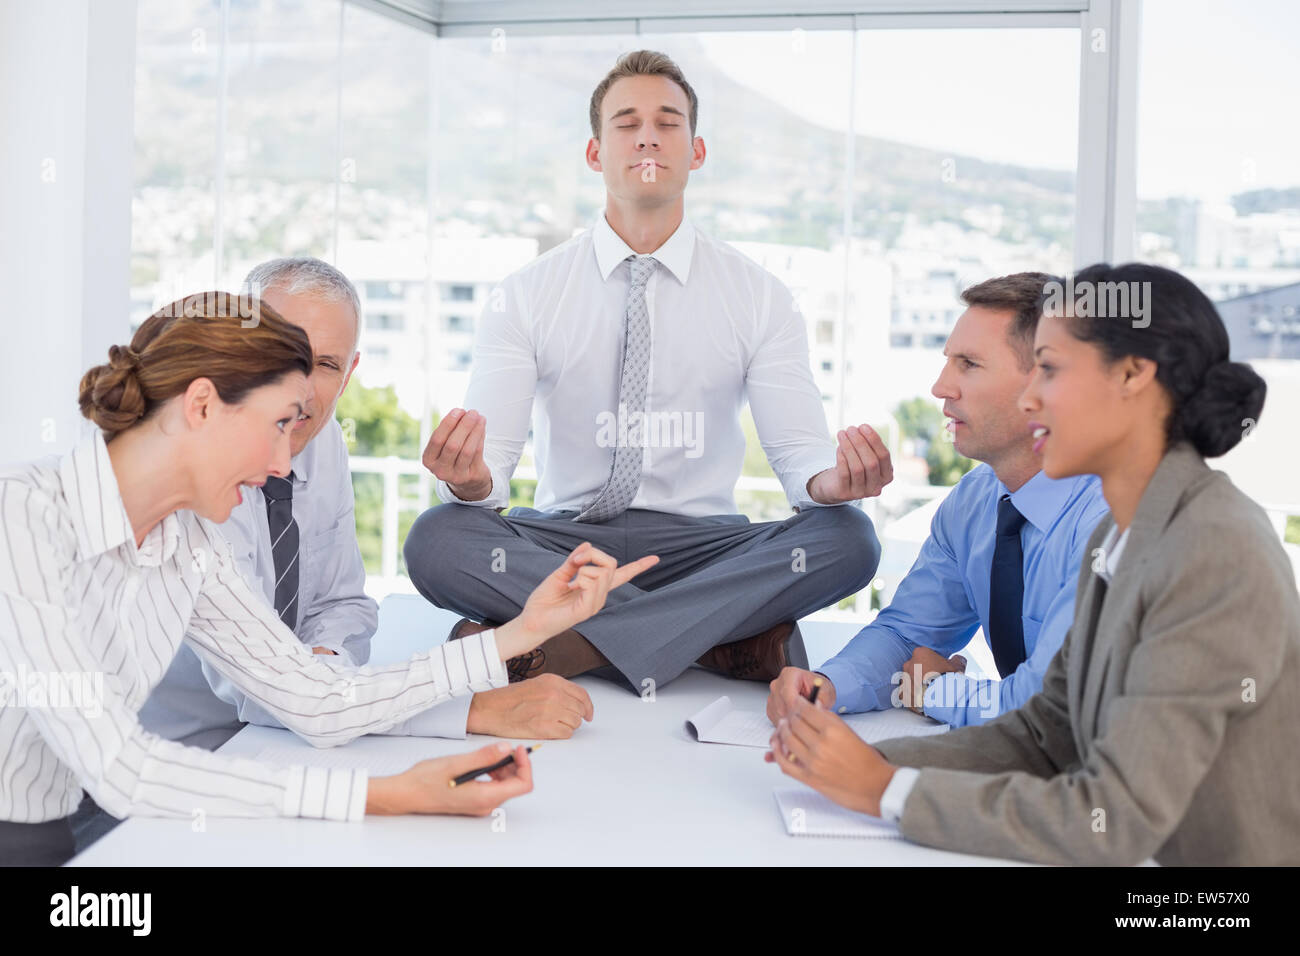 Businessman relaxing on the desk with upset colleagues around - Stock Image